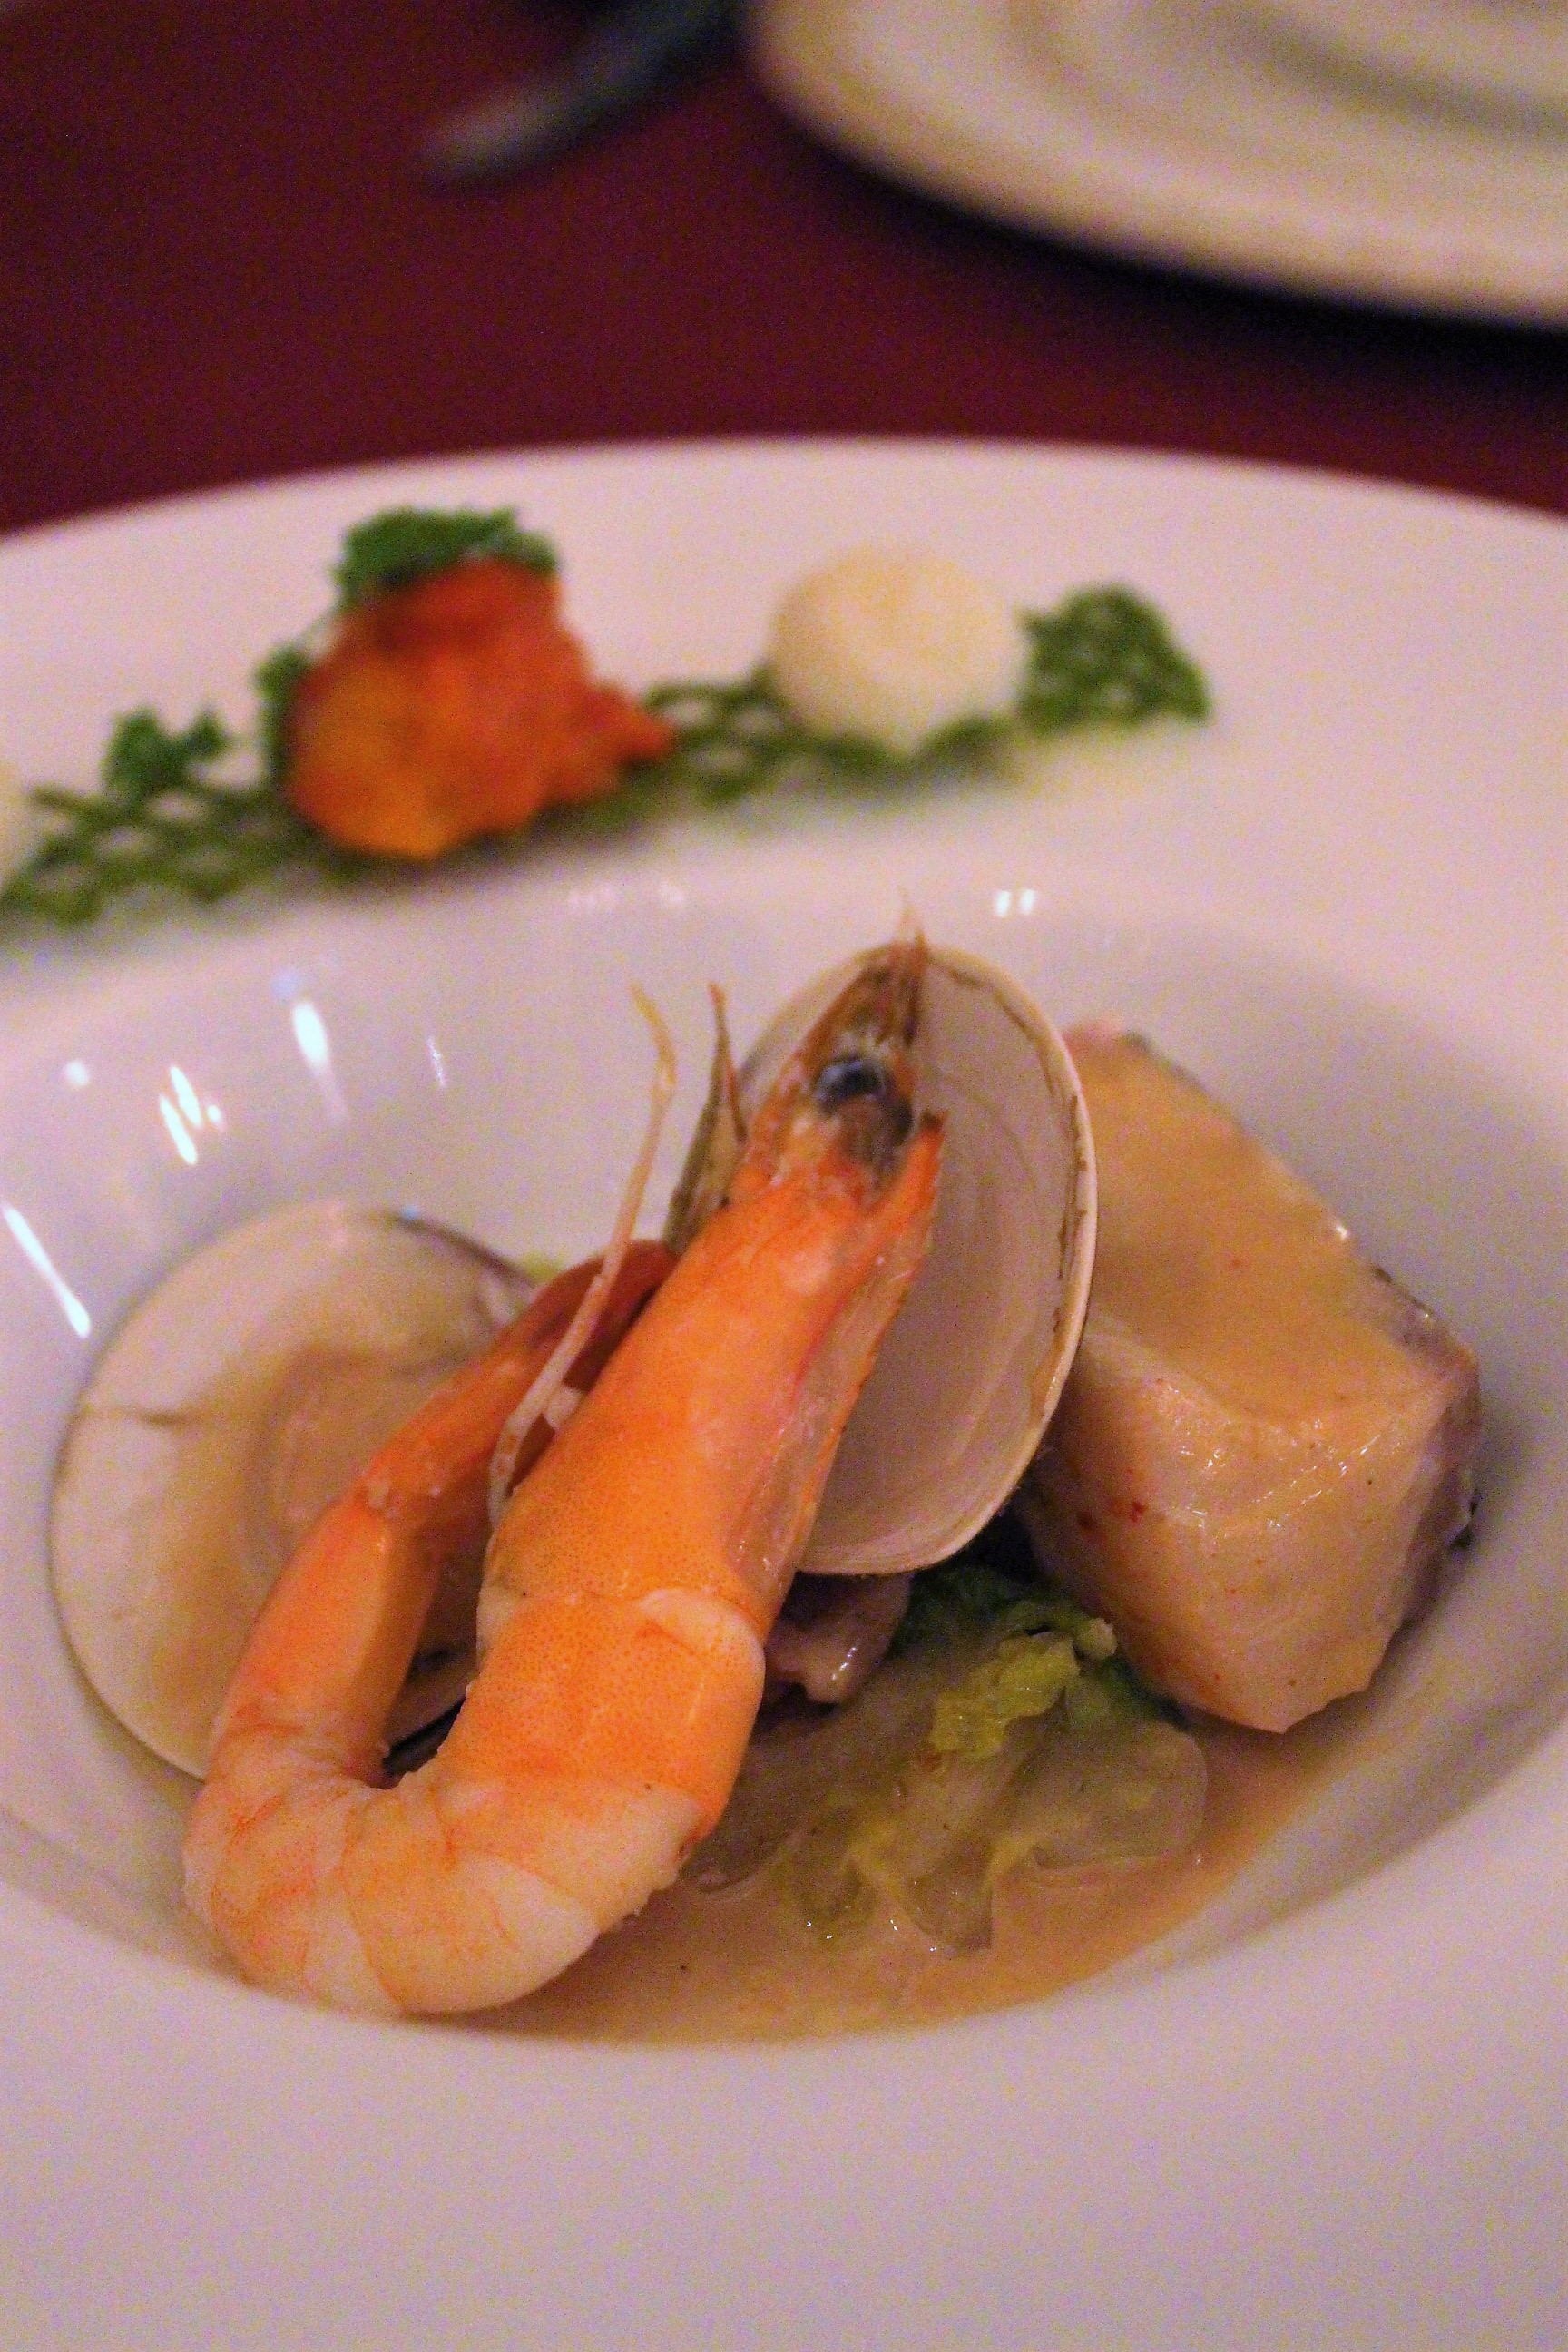 Steamed Pacific Cod with White Wine Sauce at Magellan's in DisneySea, Tokyo, Japan